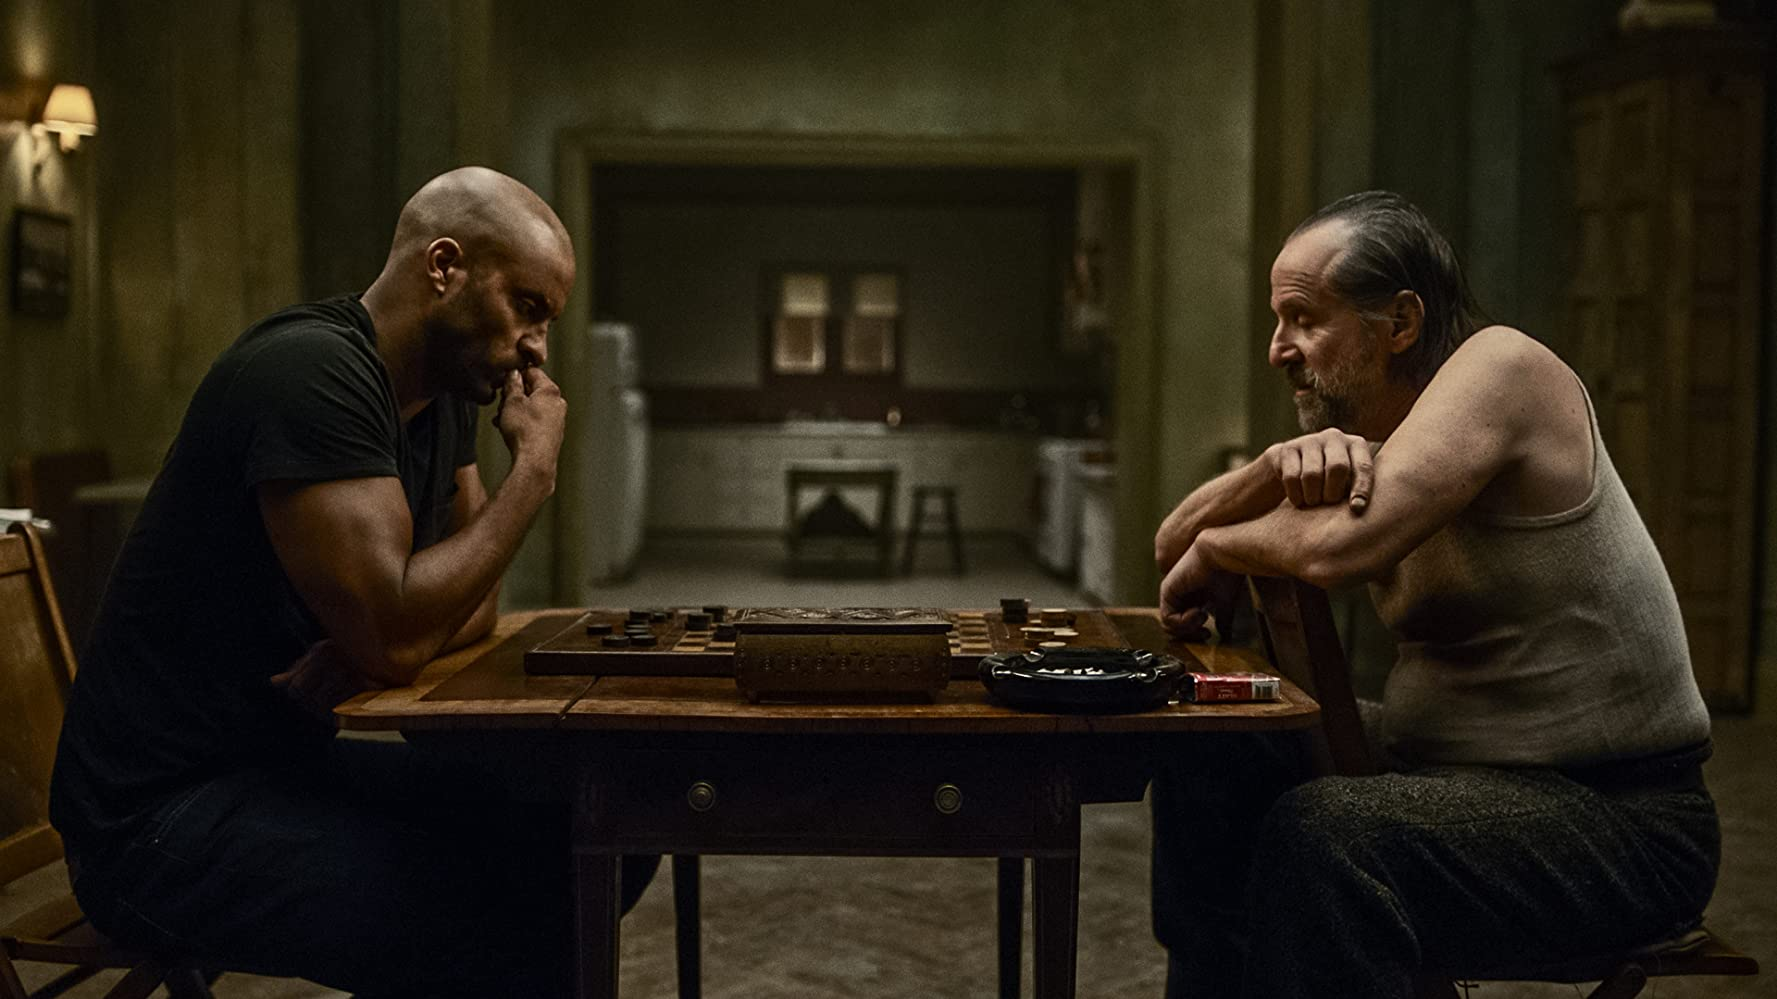 Peter Stormare and Ricky Whittle